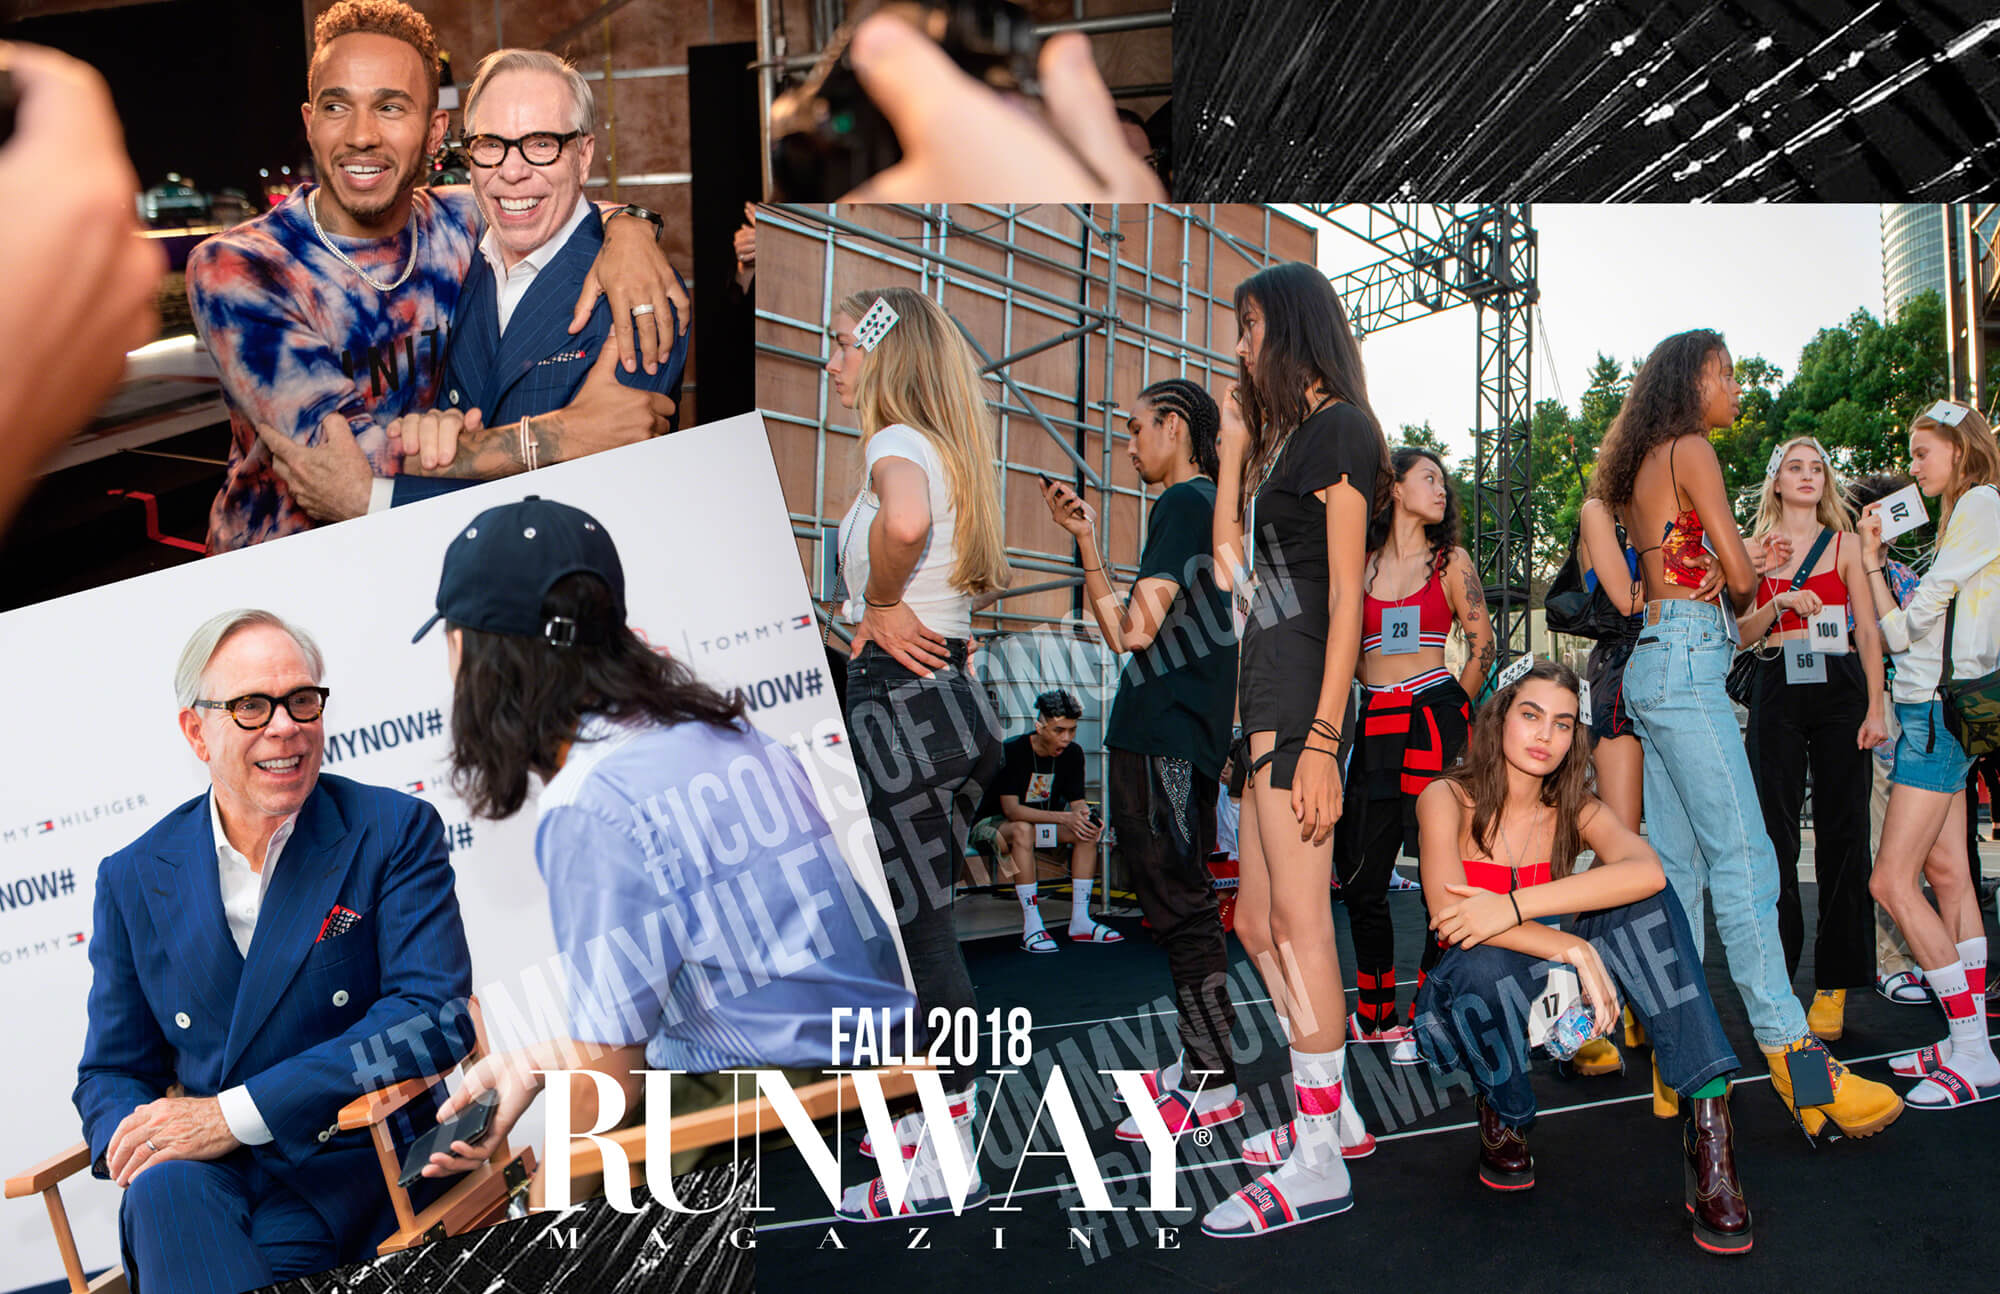 TOMMYNOW ICONS Fall 2018 by Runway Magazine